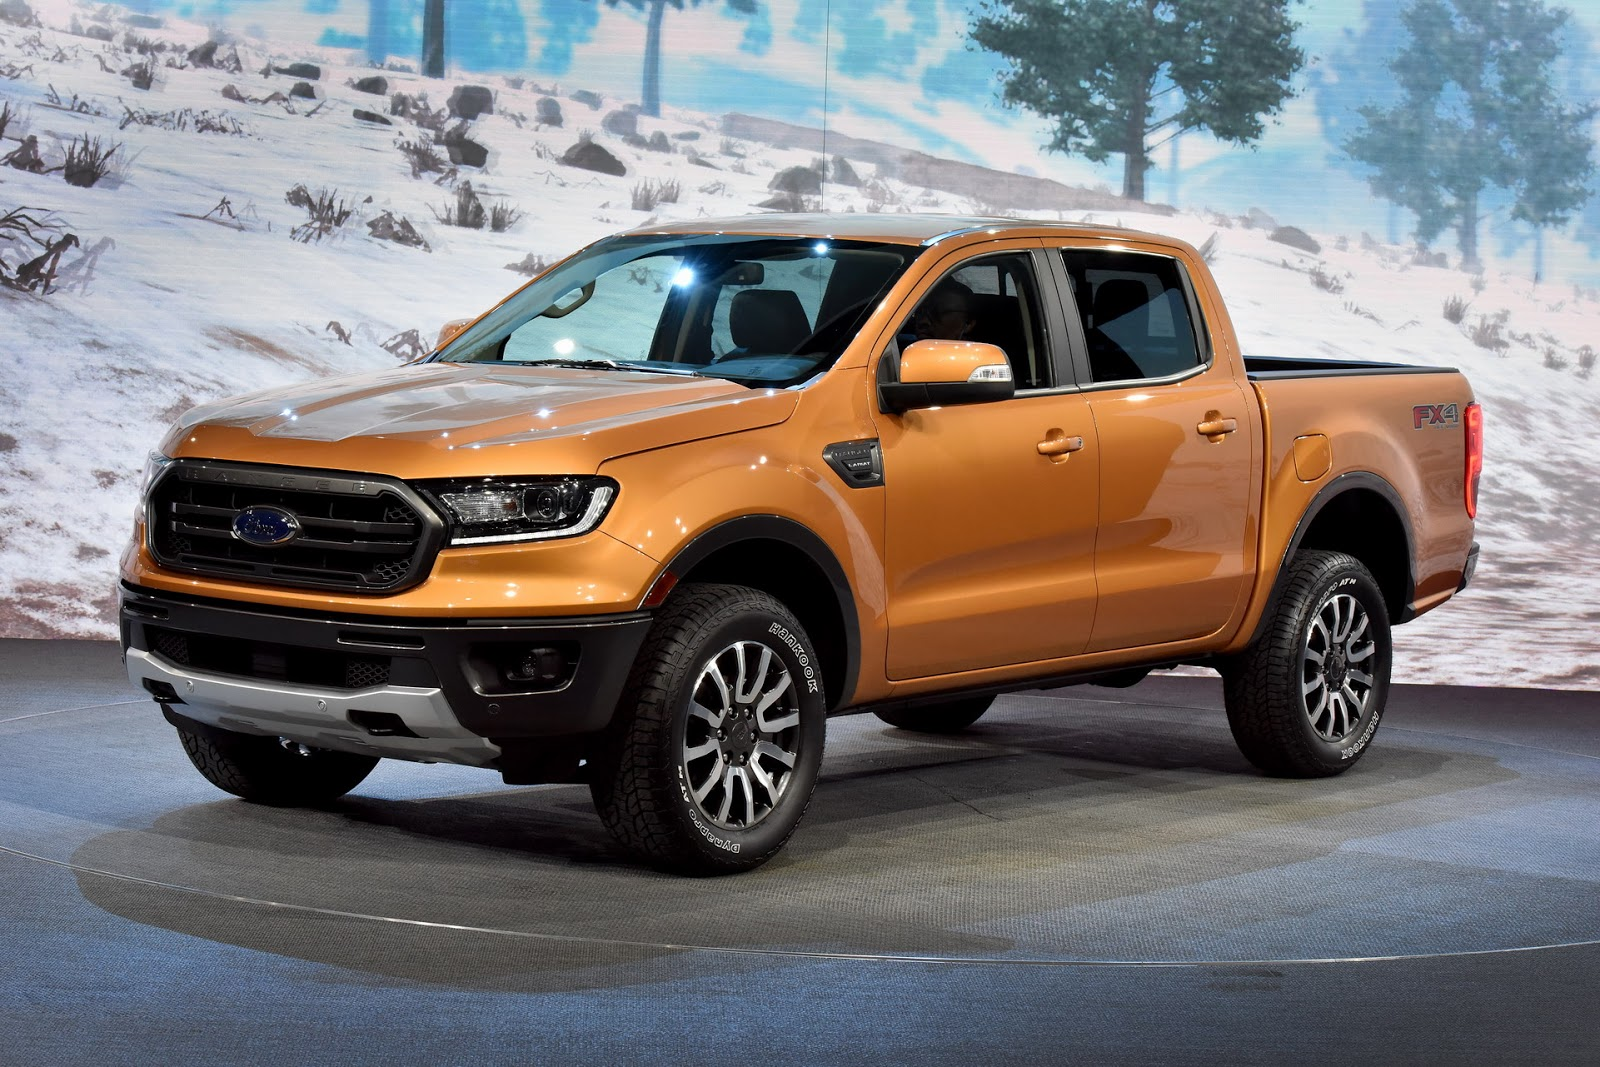 2019 ford ranger wants to become america s default midsize. Black Bedroom Furniture Sets. Home Design Ideas